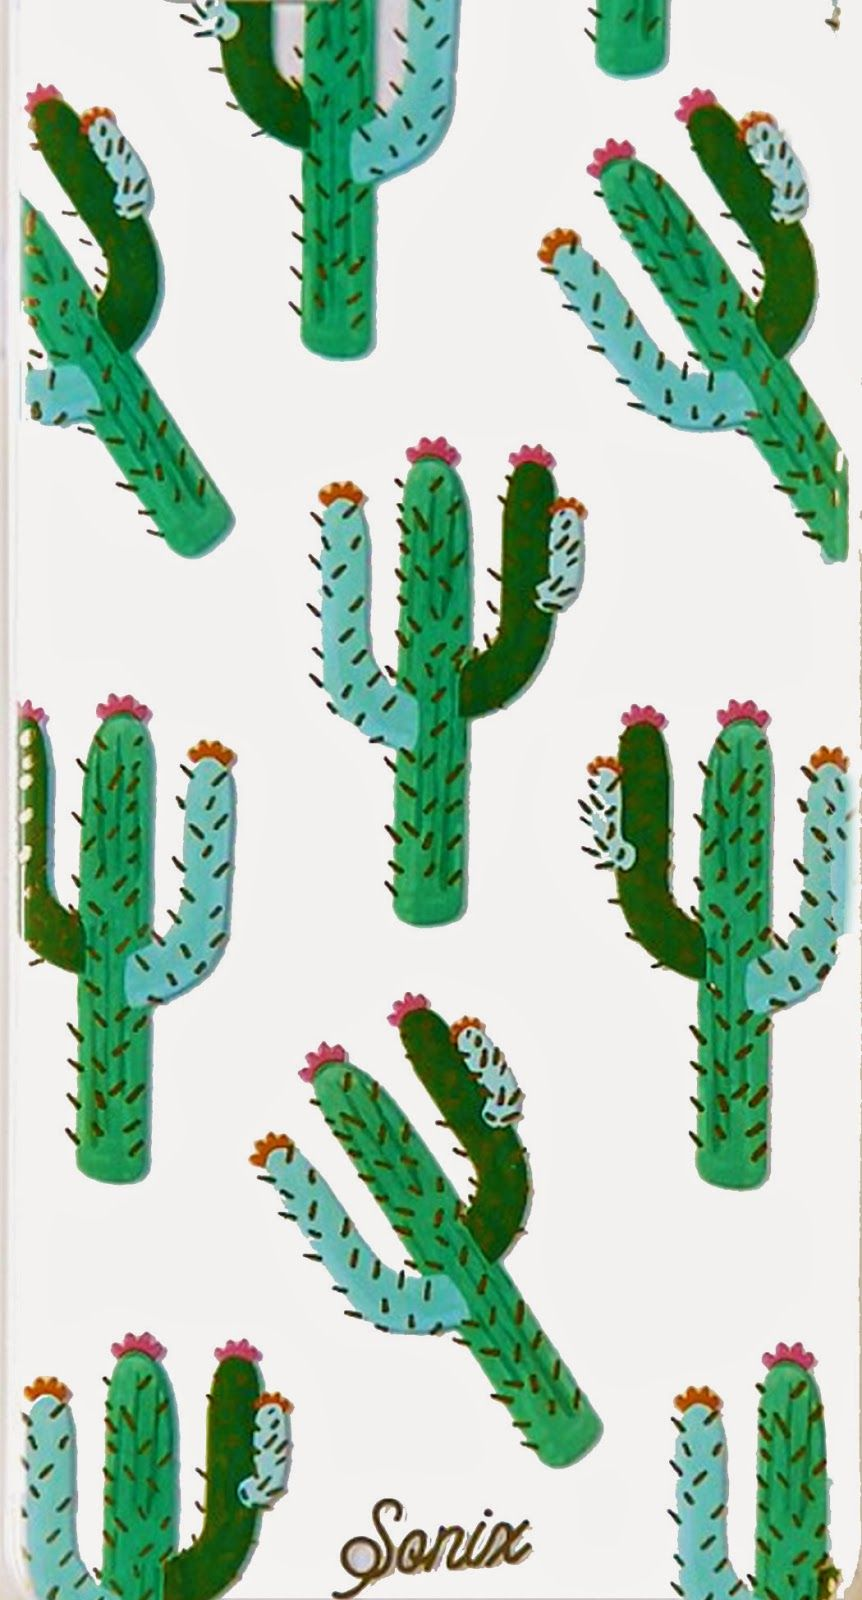 Matching iphone wallpaper tumblr - Hellomaphie Diy Phone Cases Tumblr 90 S Drake Urban Outfitters More